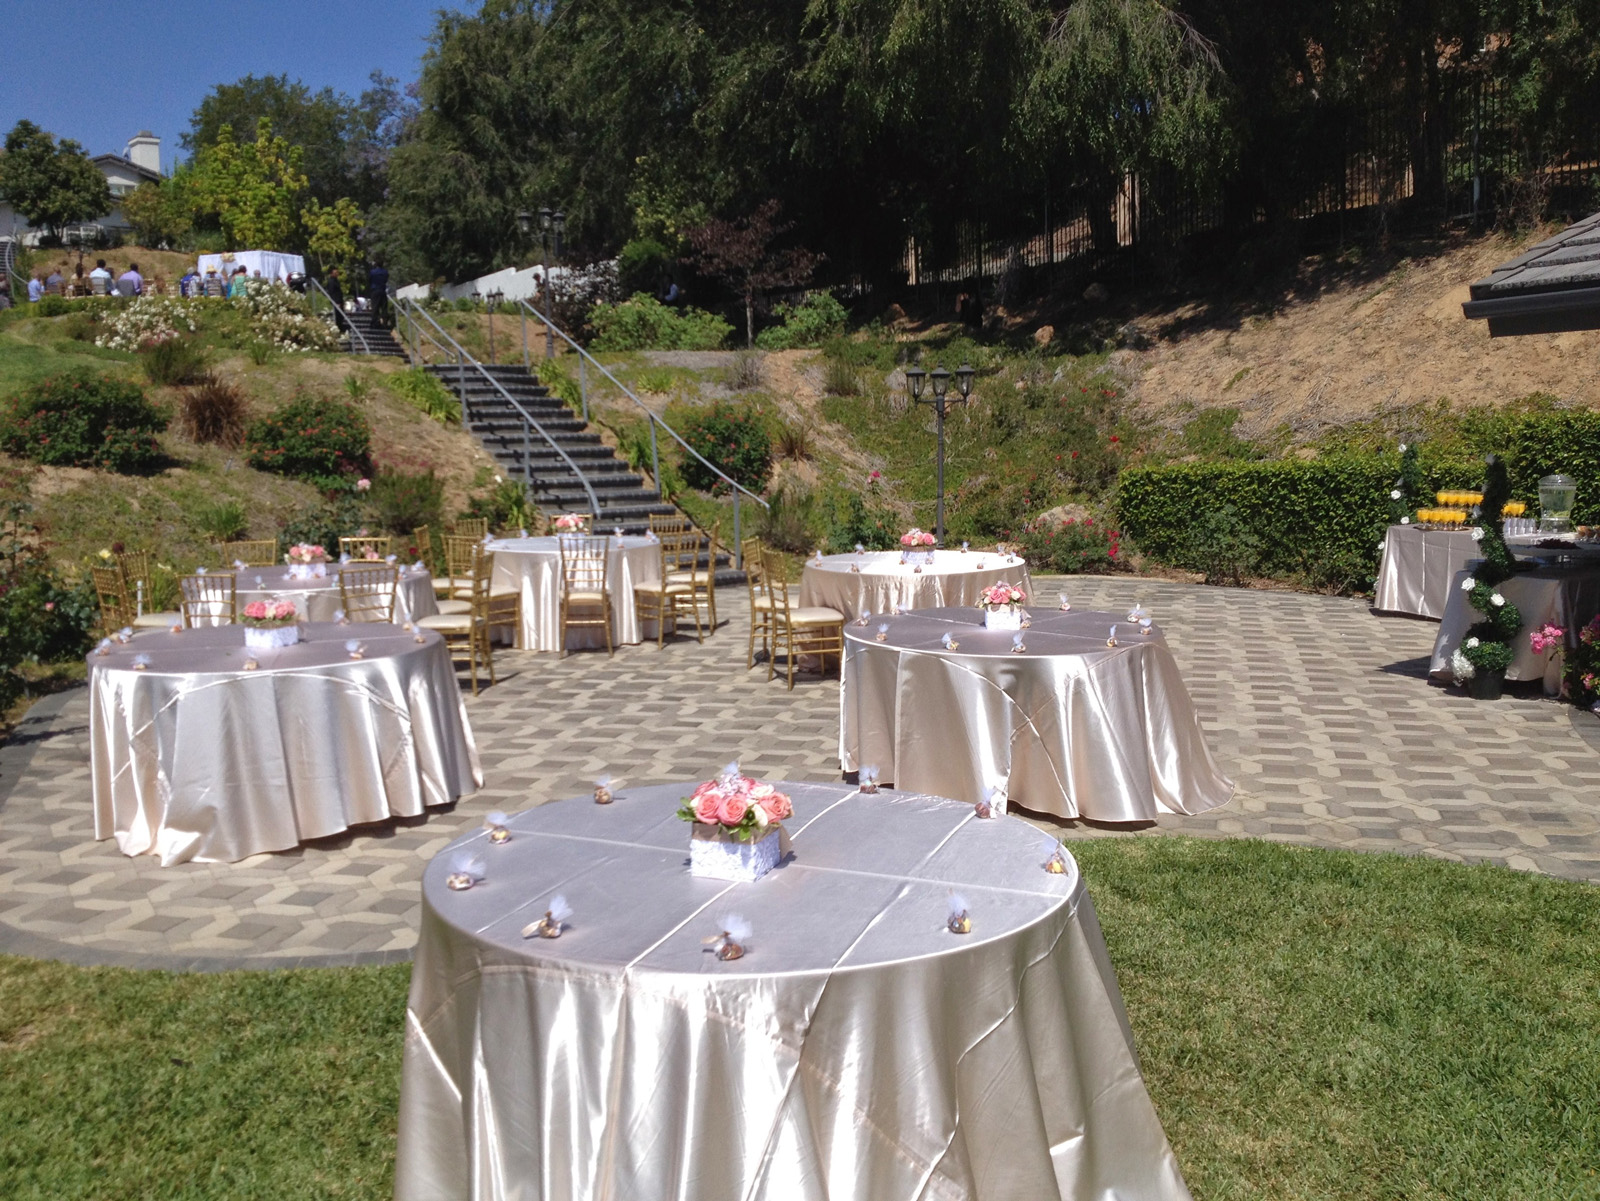 Tray Ped Appetizers Wedding Vendors Los Angeles Jenna Janelle Rose Photography Cost Of